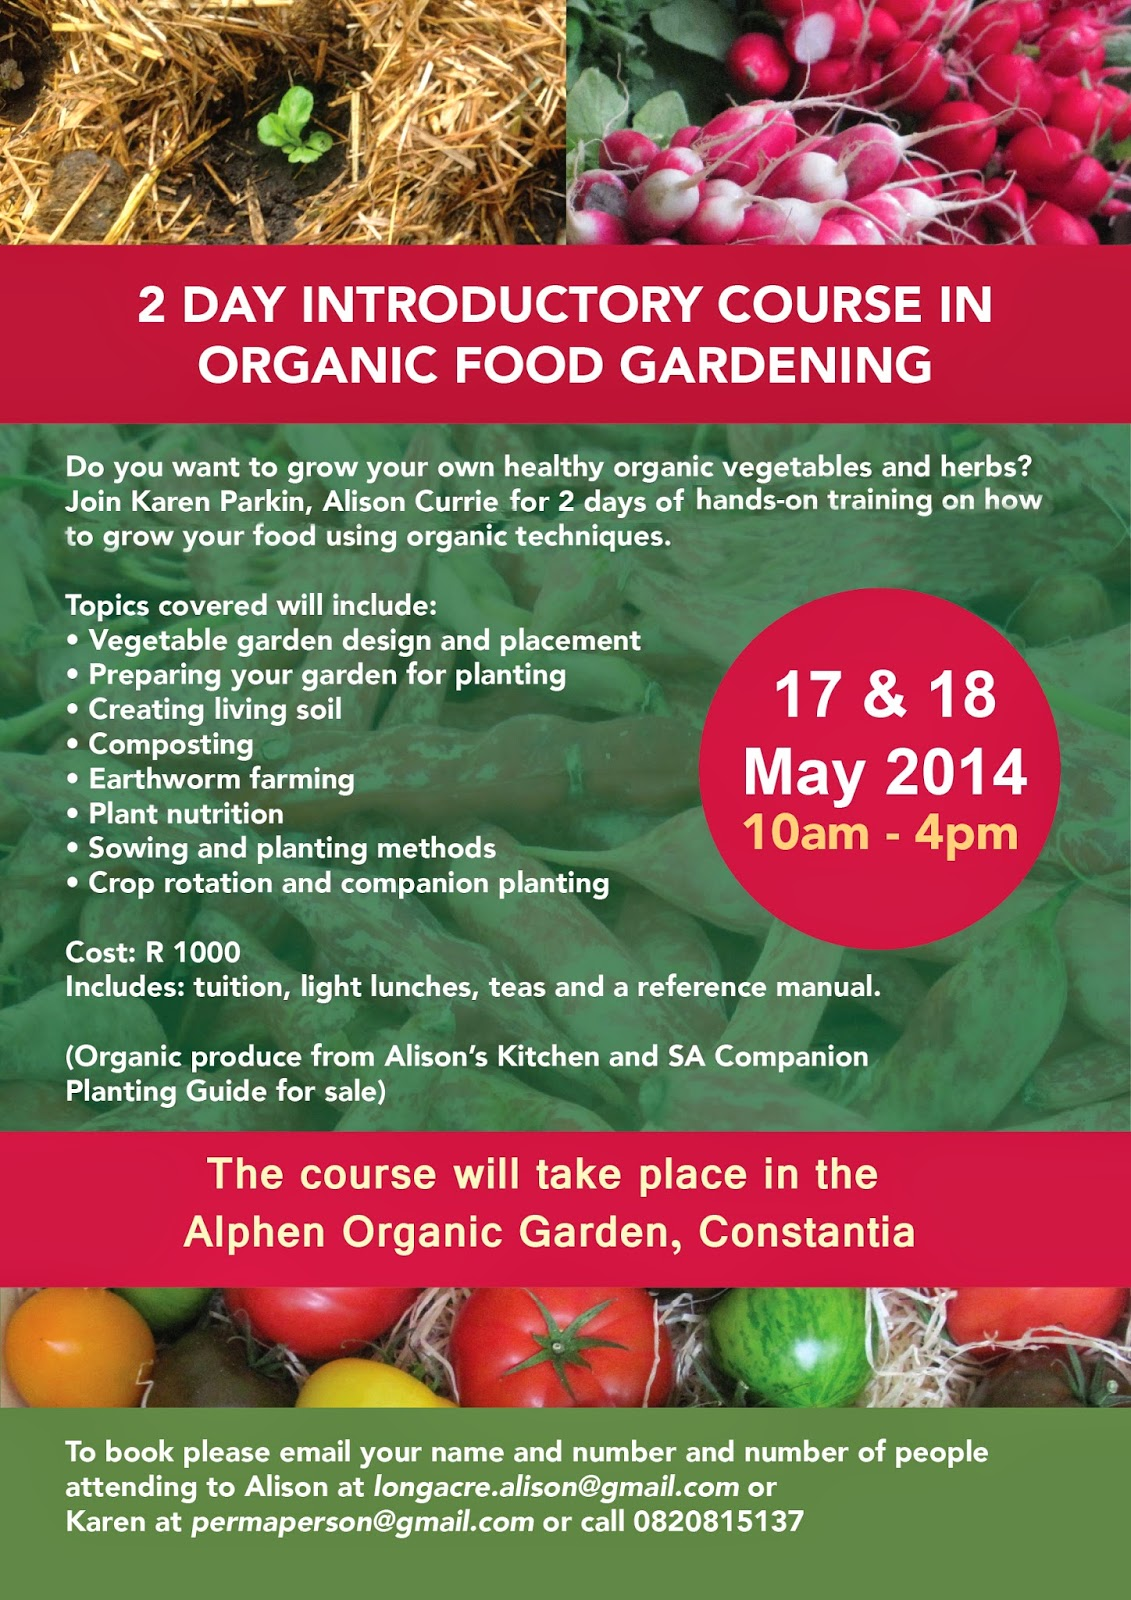 2 Day Intro to Organic Gardening